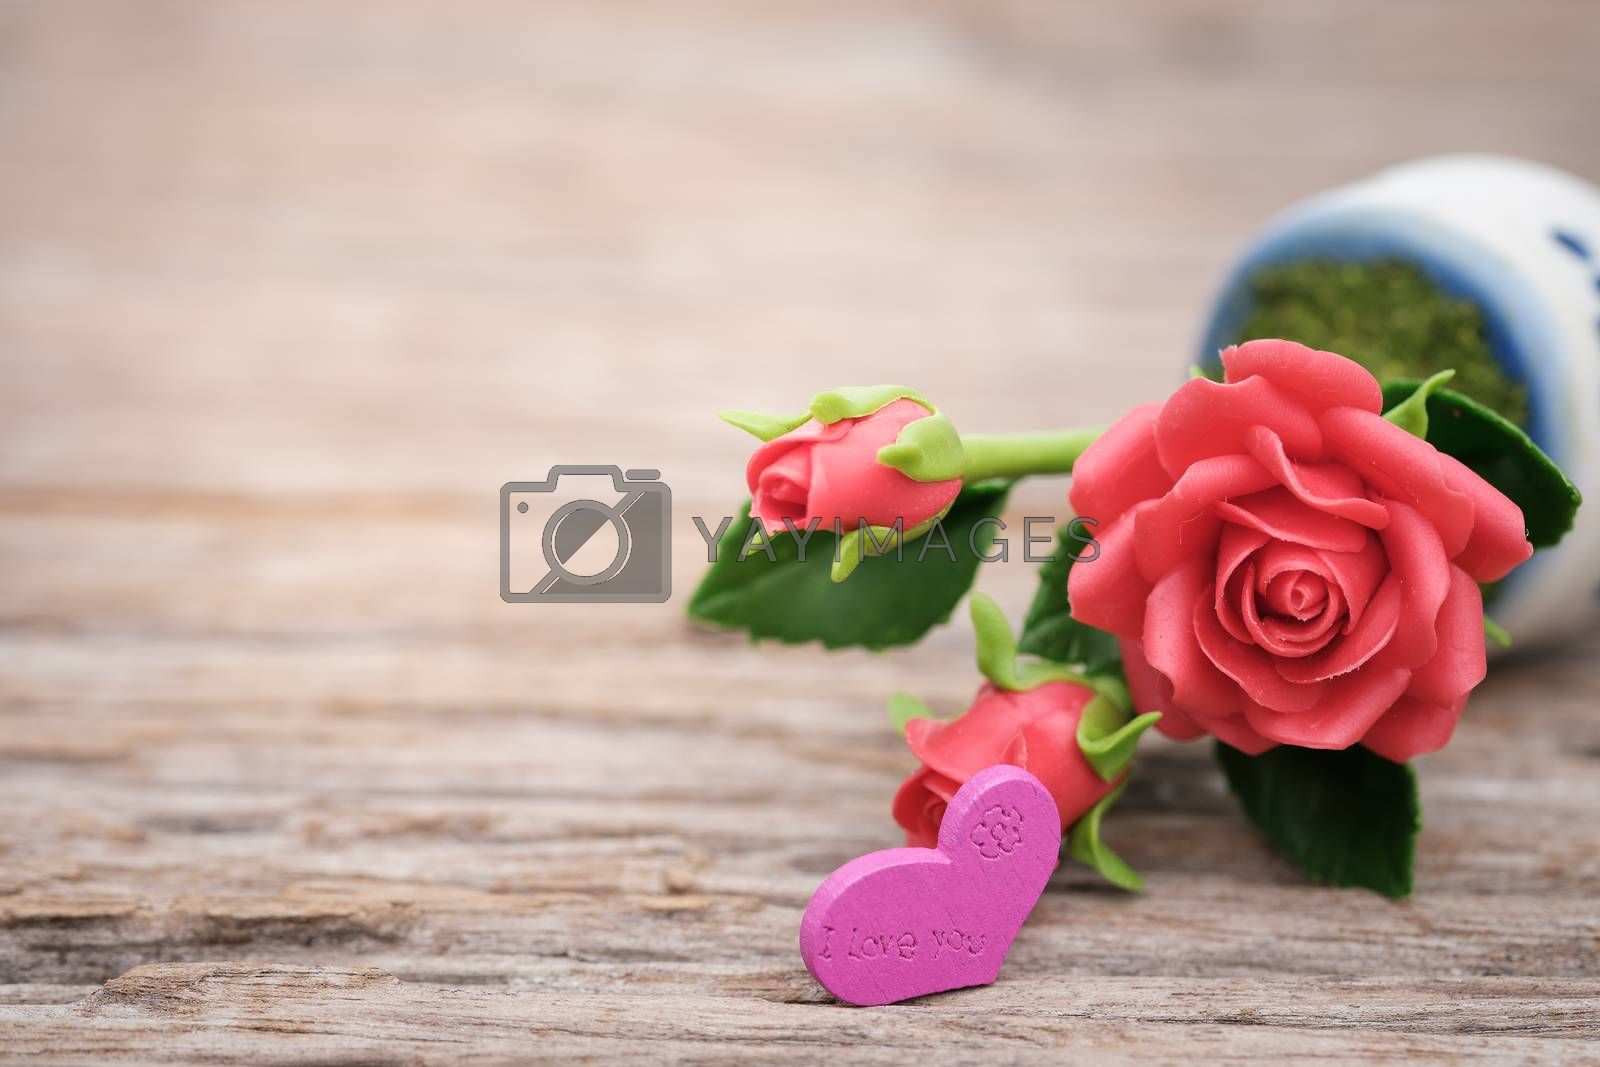 Heart shape and rose on wooden background with space to write. Valentine concept, Vintage tone, AF point selection.